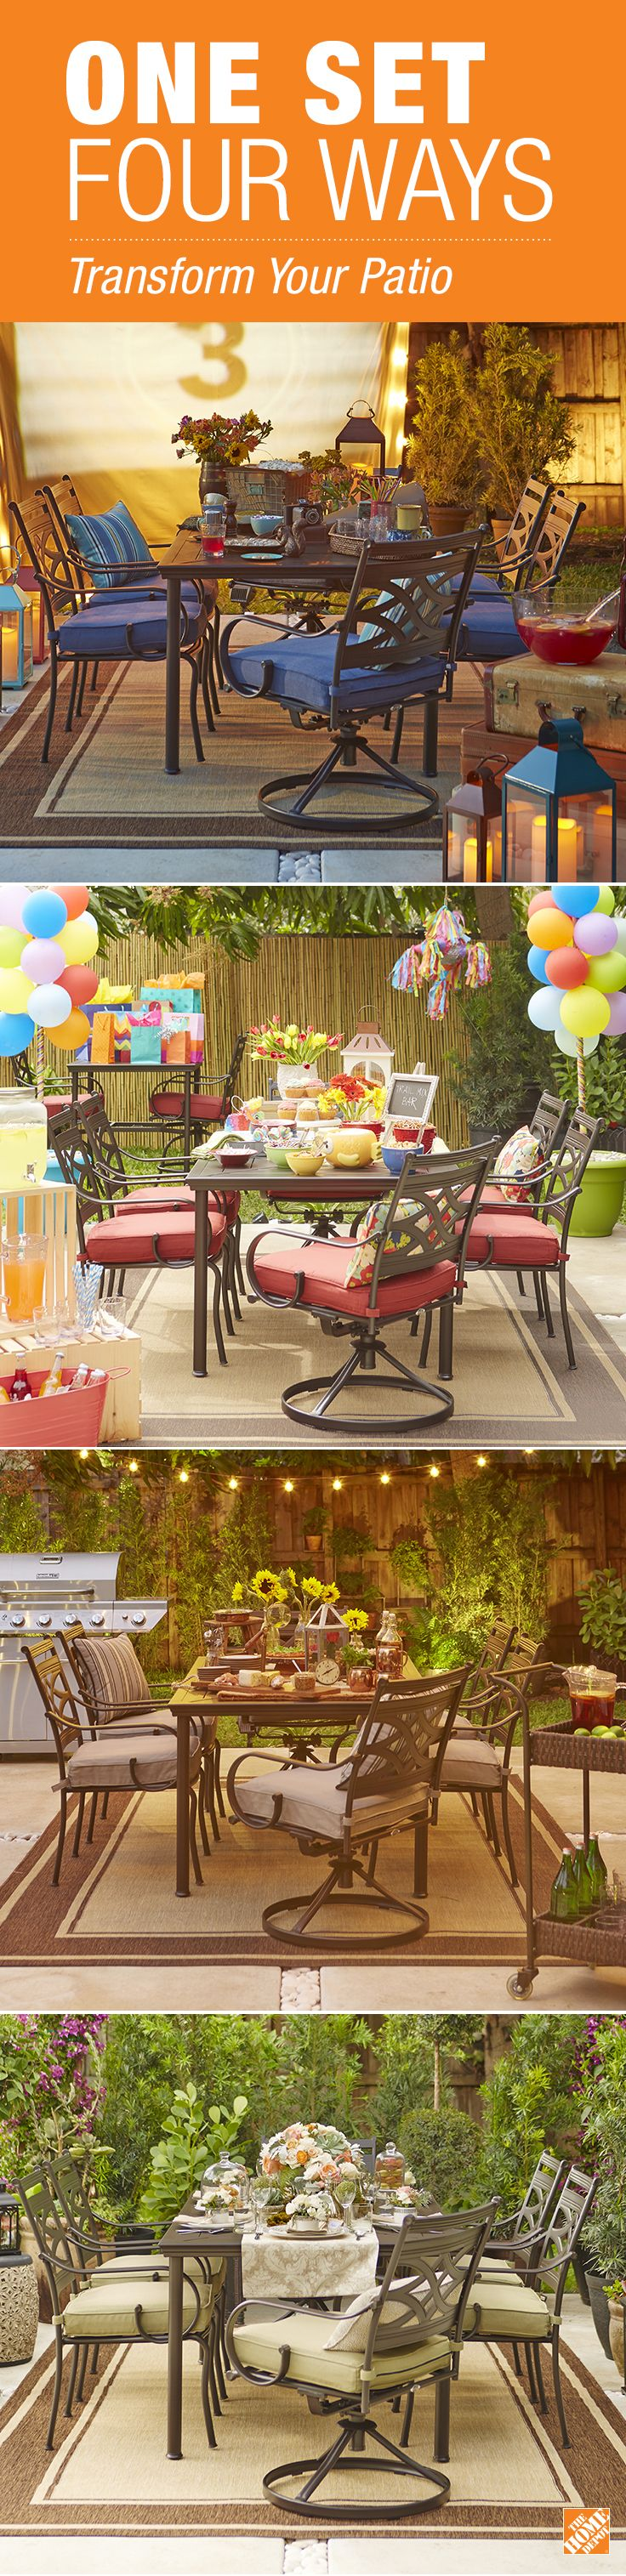 From elegant garden party to backyard movie night, the Middletown dining set from Hampton Bay can host them all. See how one set can take on multiple looks with the help of string lights, lanterns, pillows and patio accessories. It's on The Home Depot Blog.